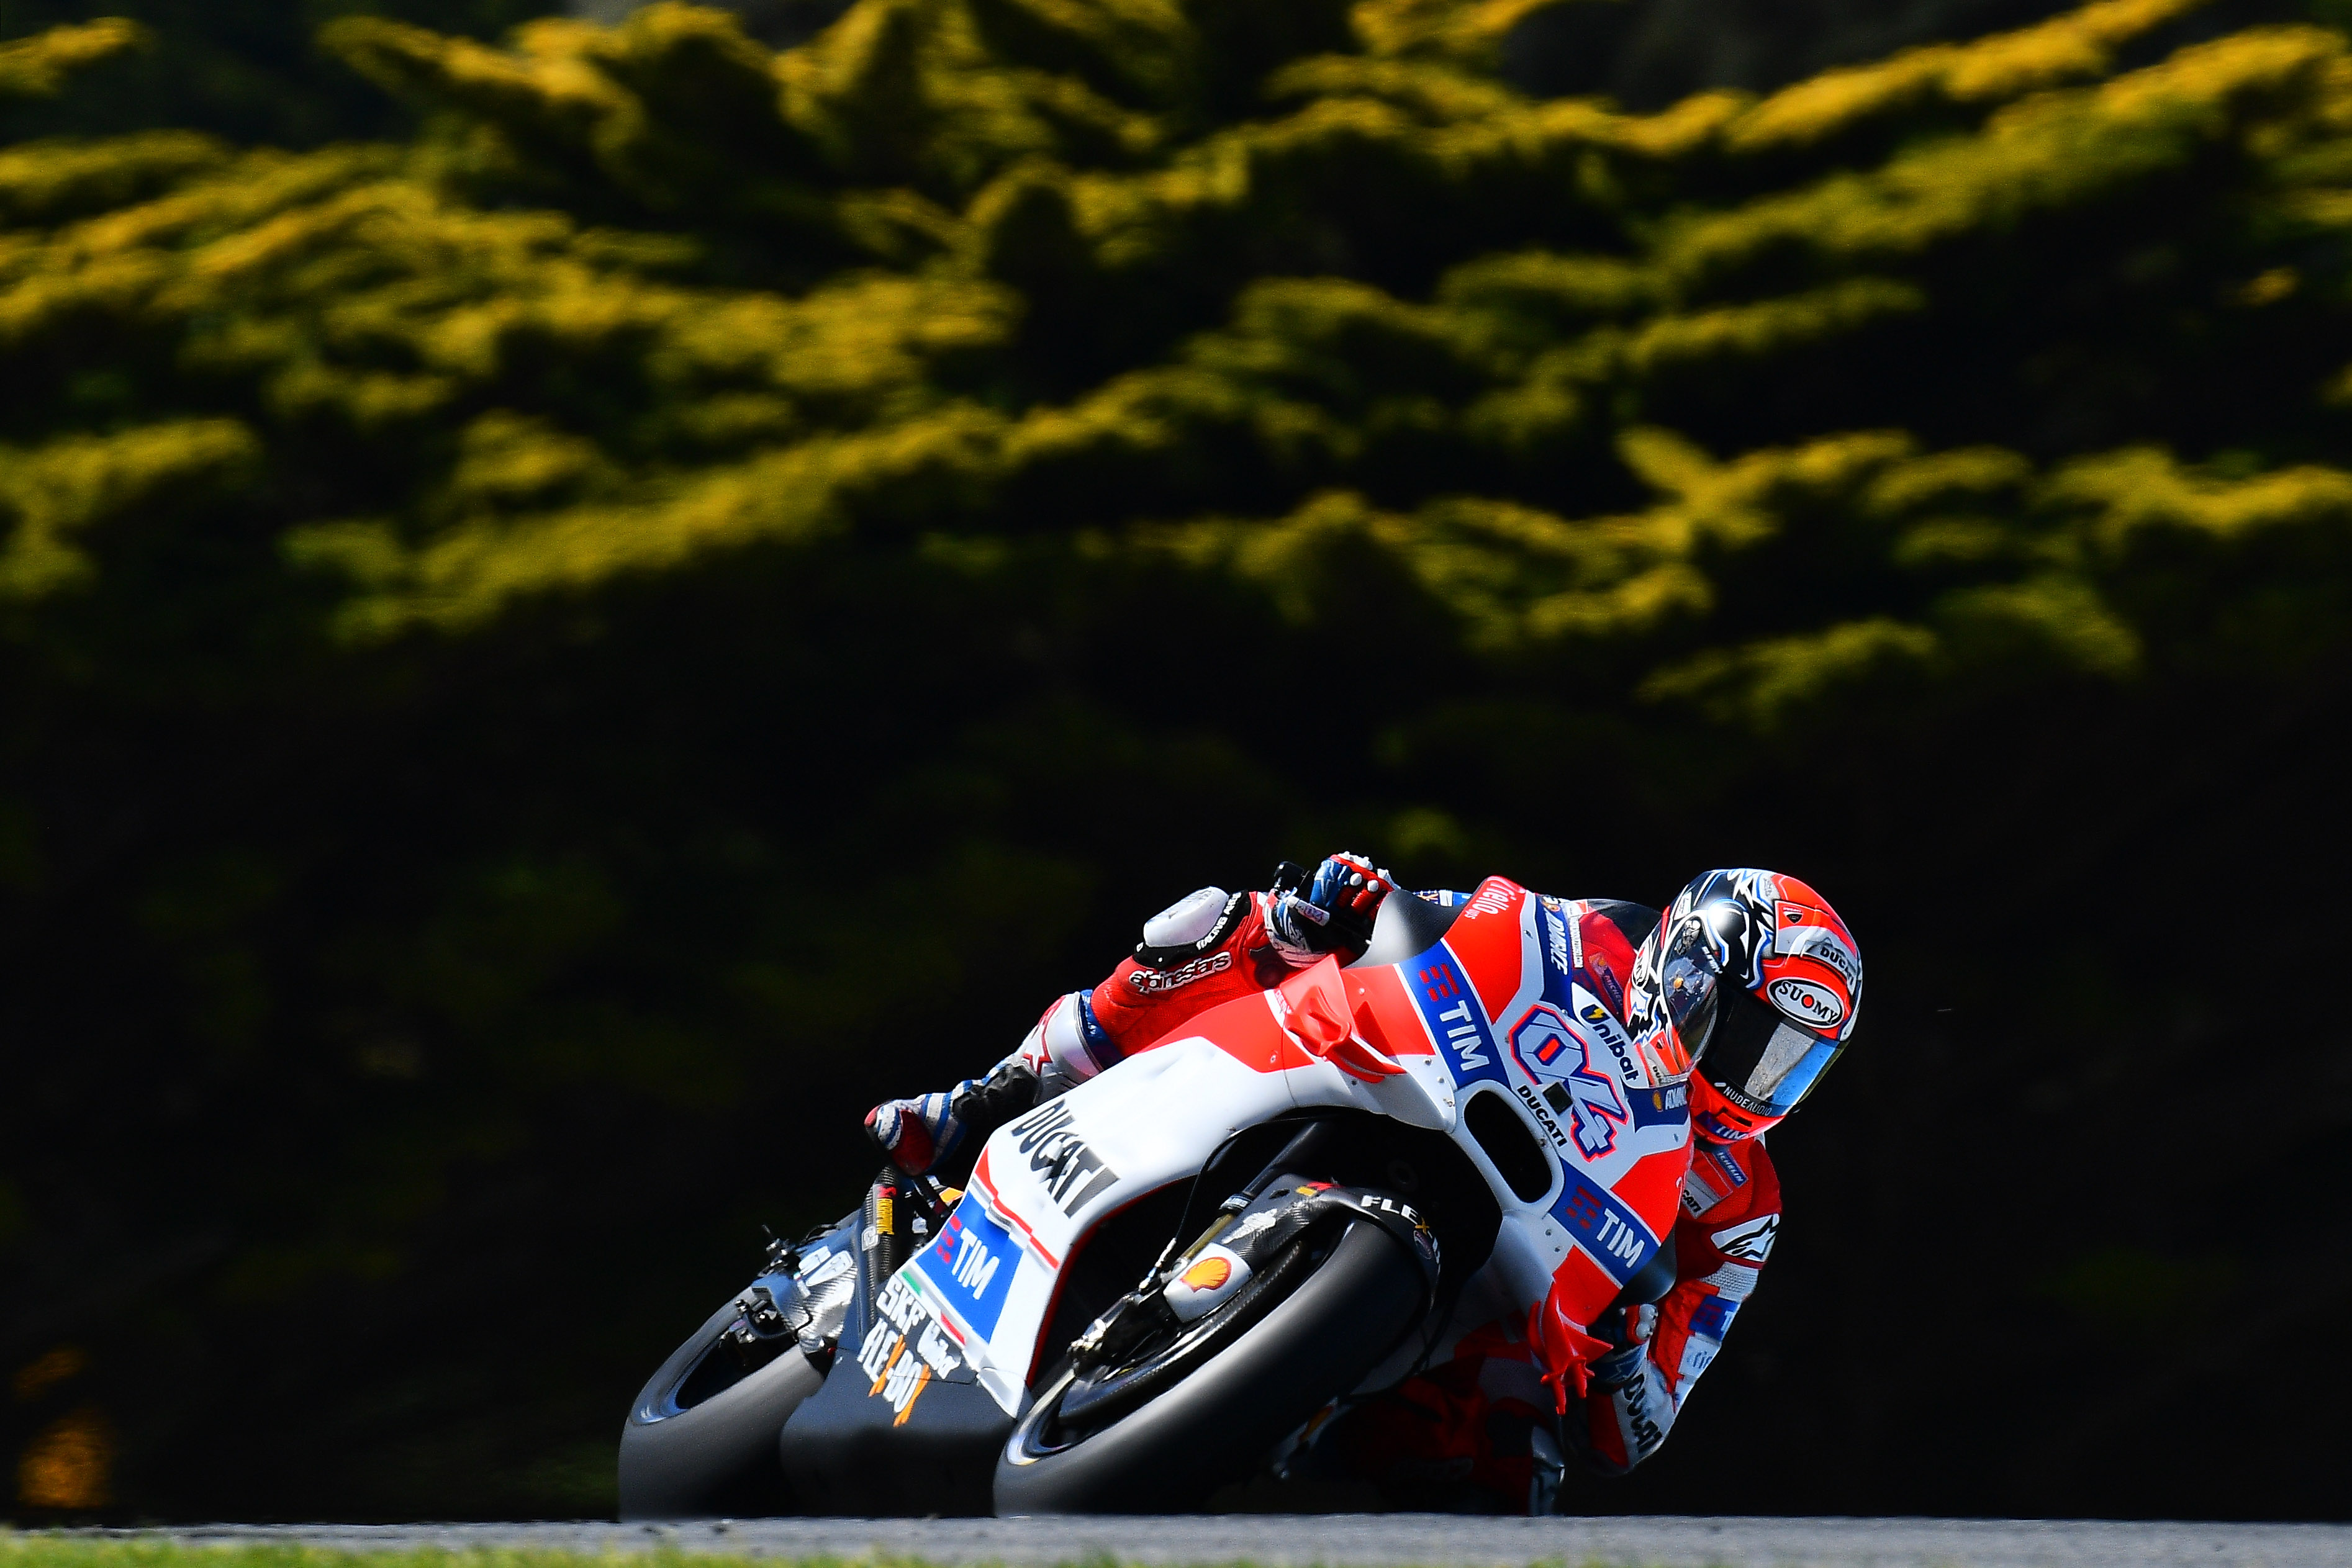 albums-press-03_competition-motogp-16_2016_gp_australia-2016-16-gp-australia-43049